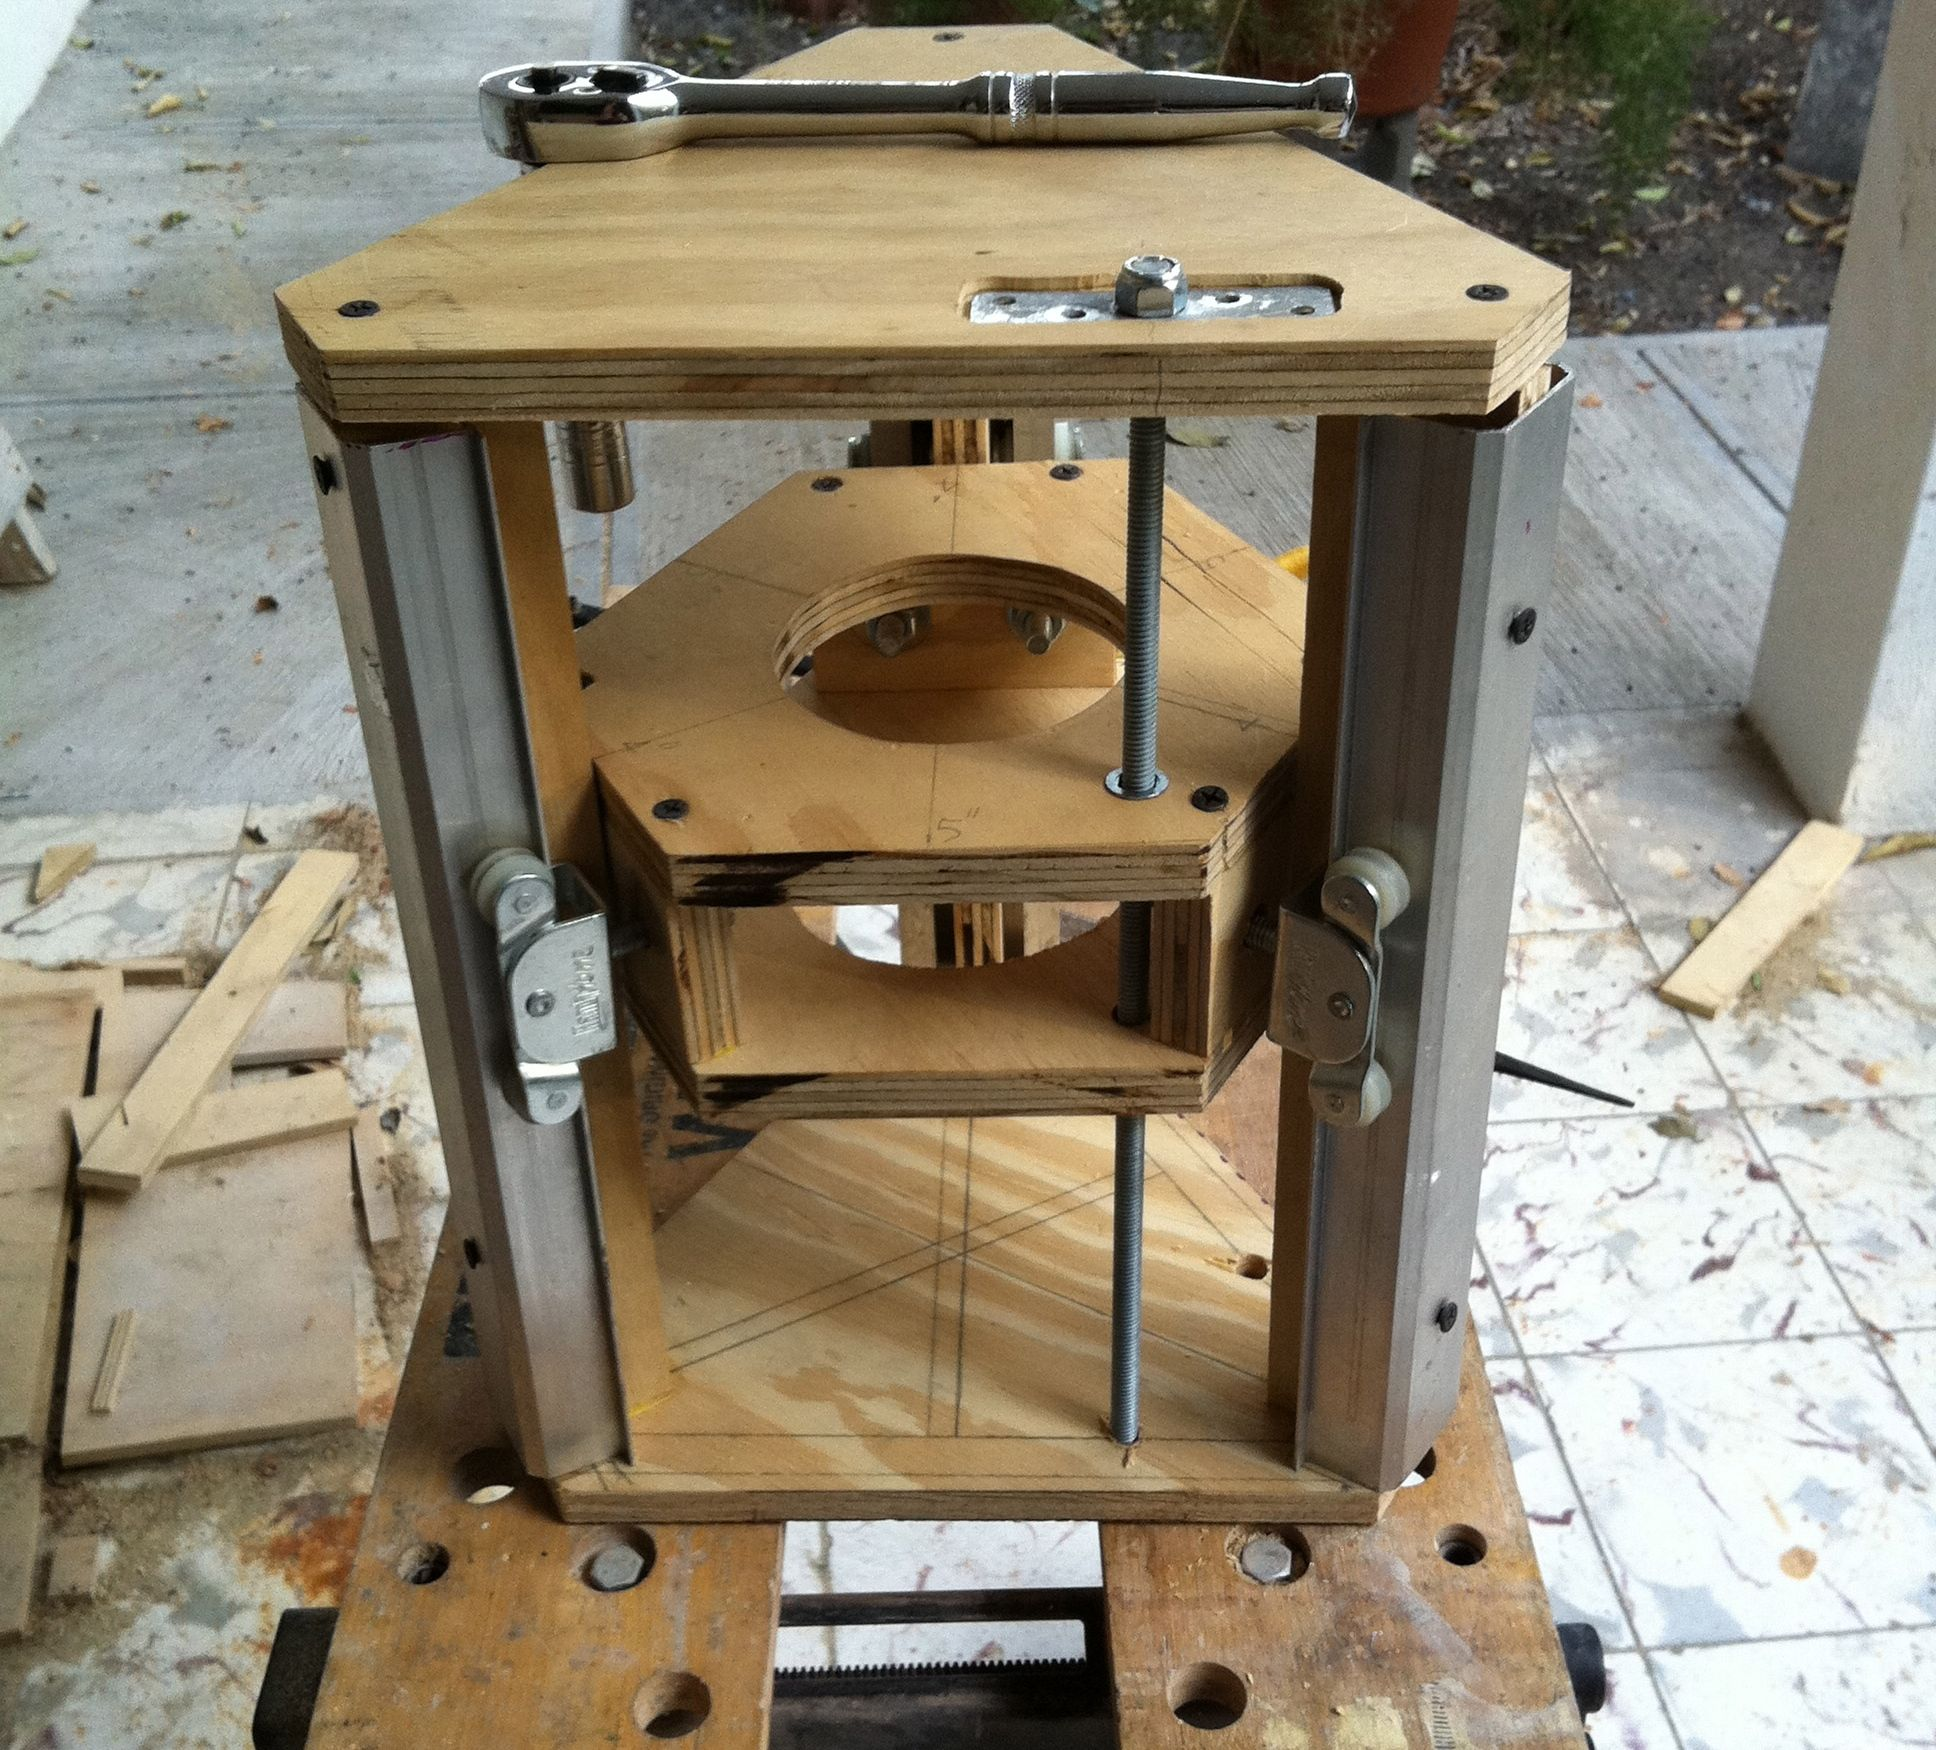 Diy router table lift - Make A Router Lift Out Of Recycled Closet Door Rails